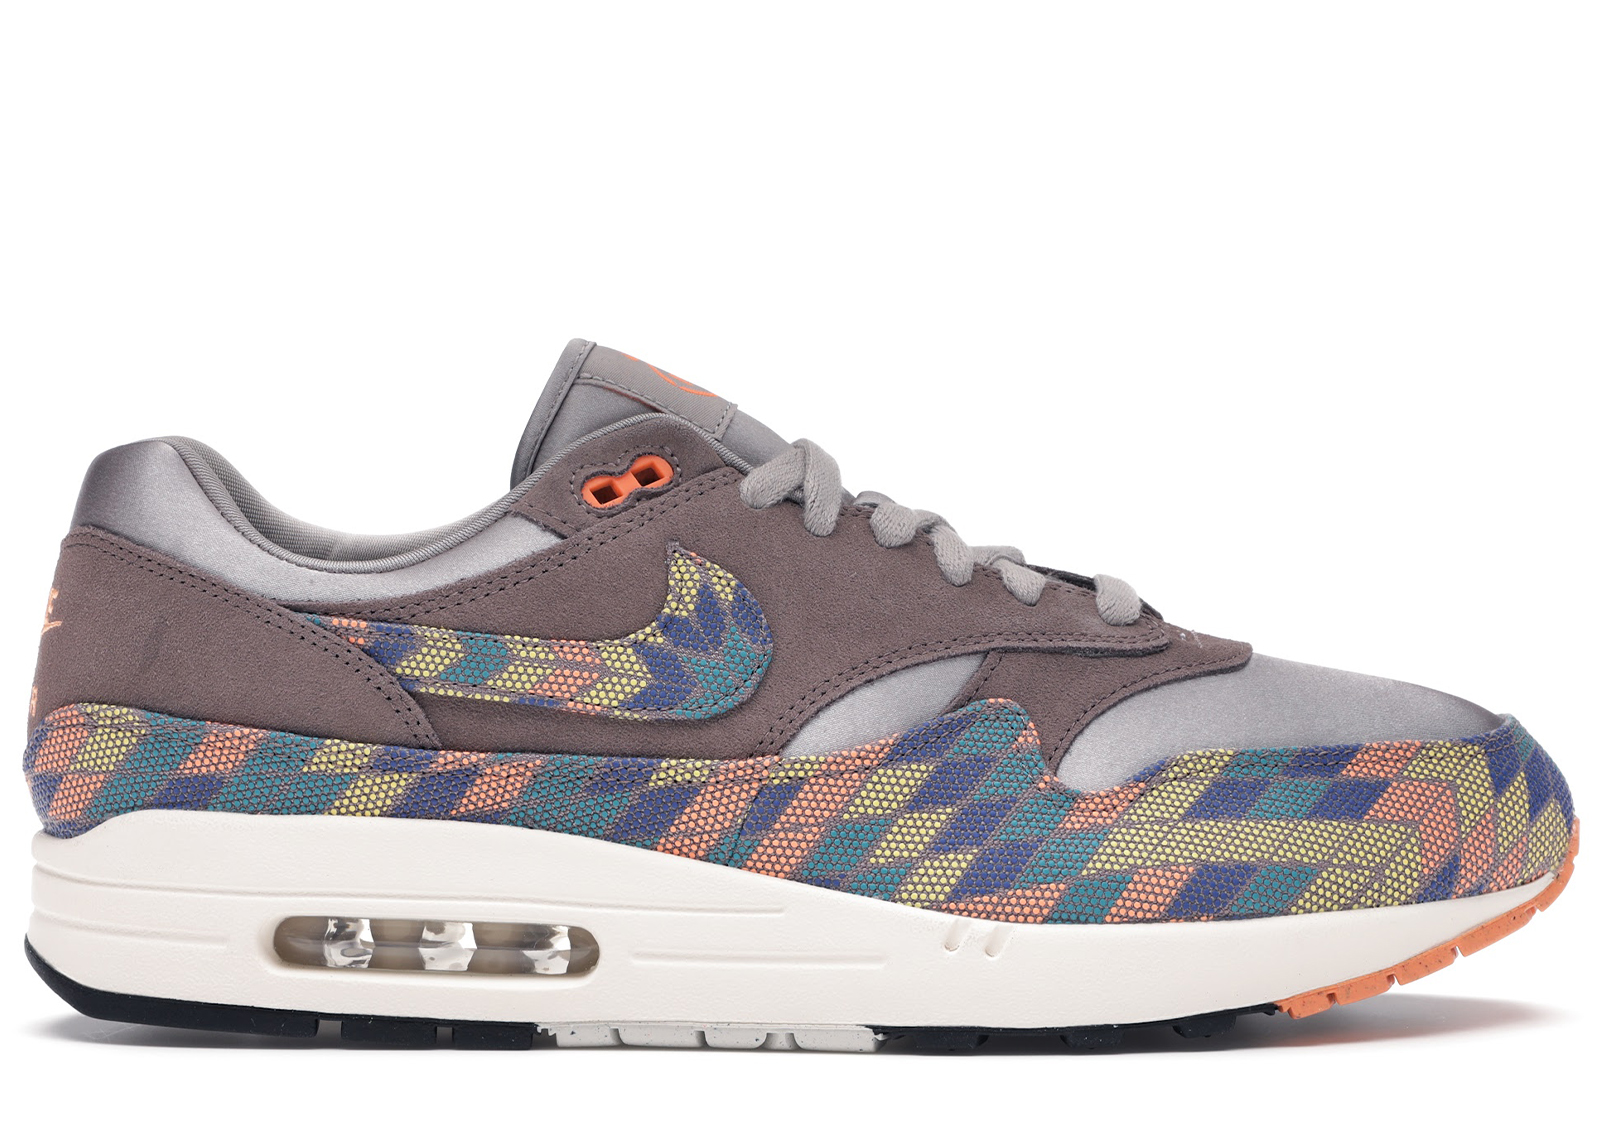 Buy Nike Air Max Size 17 Shoes & Deadstock Sneakers